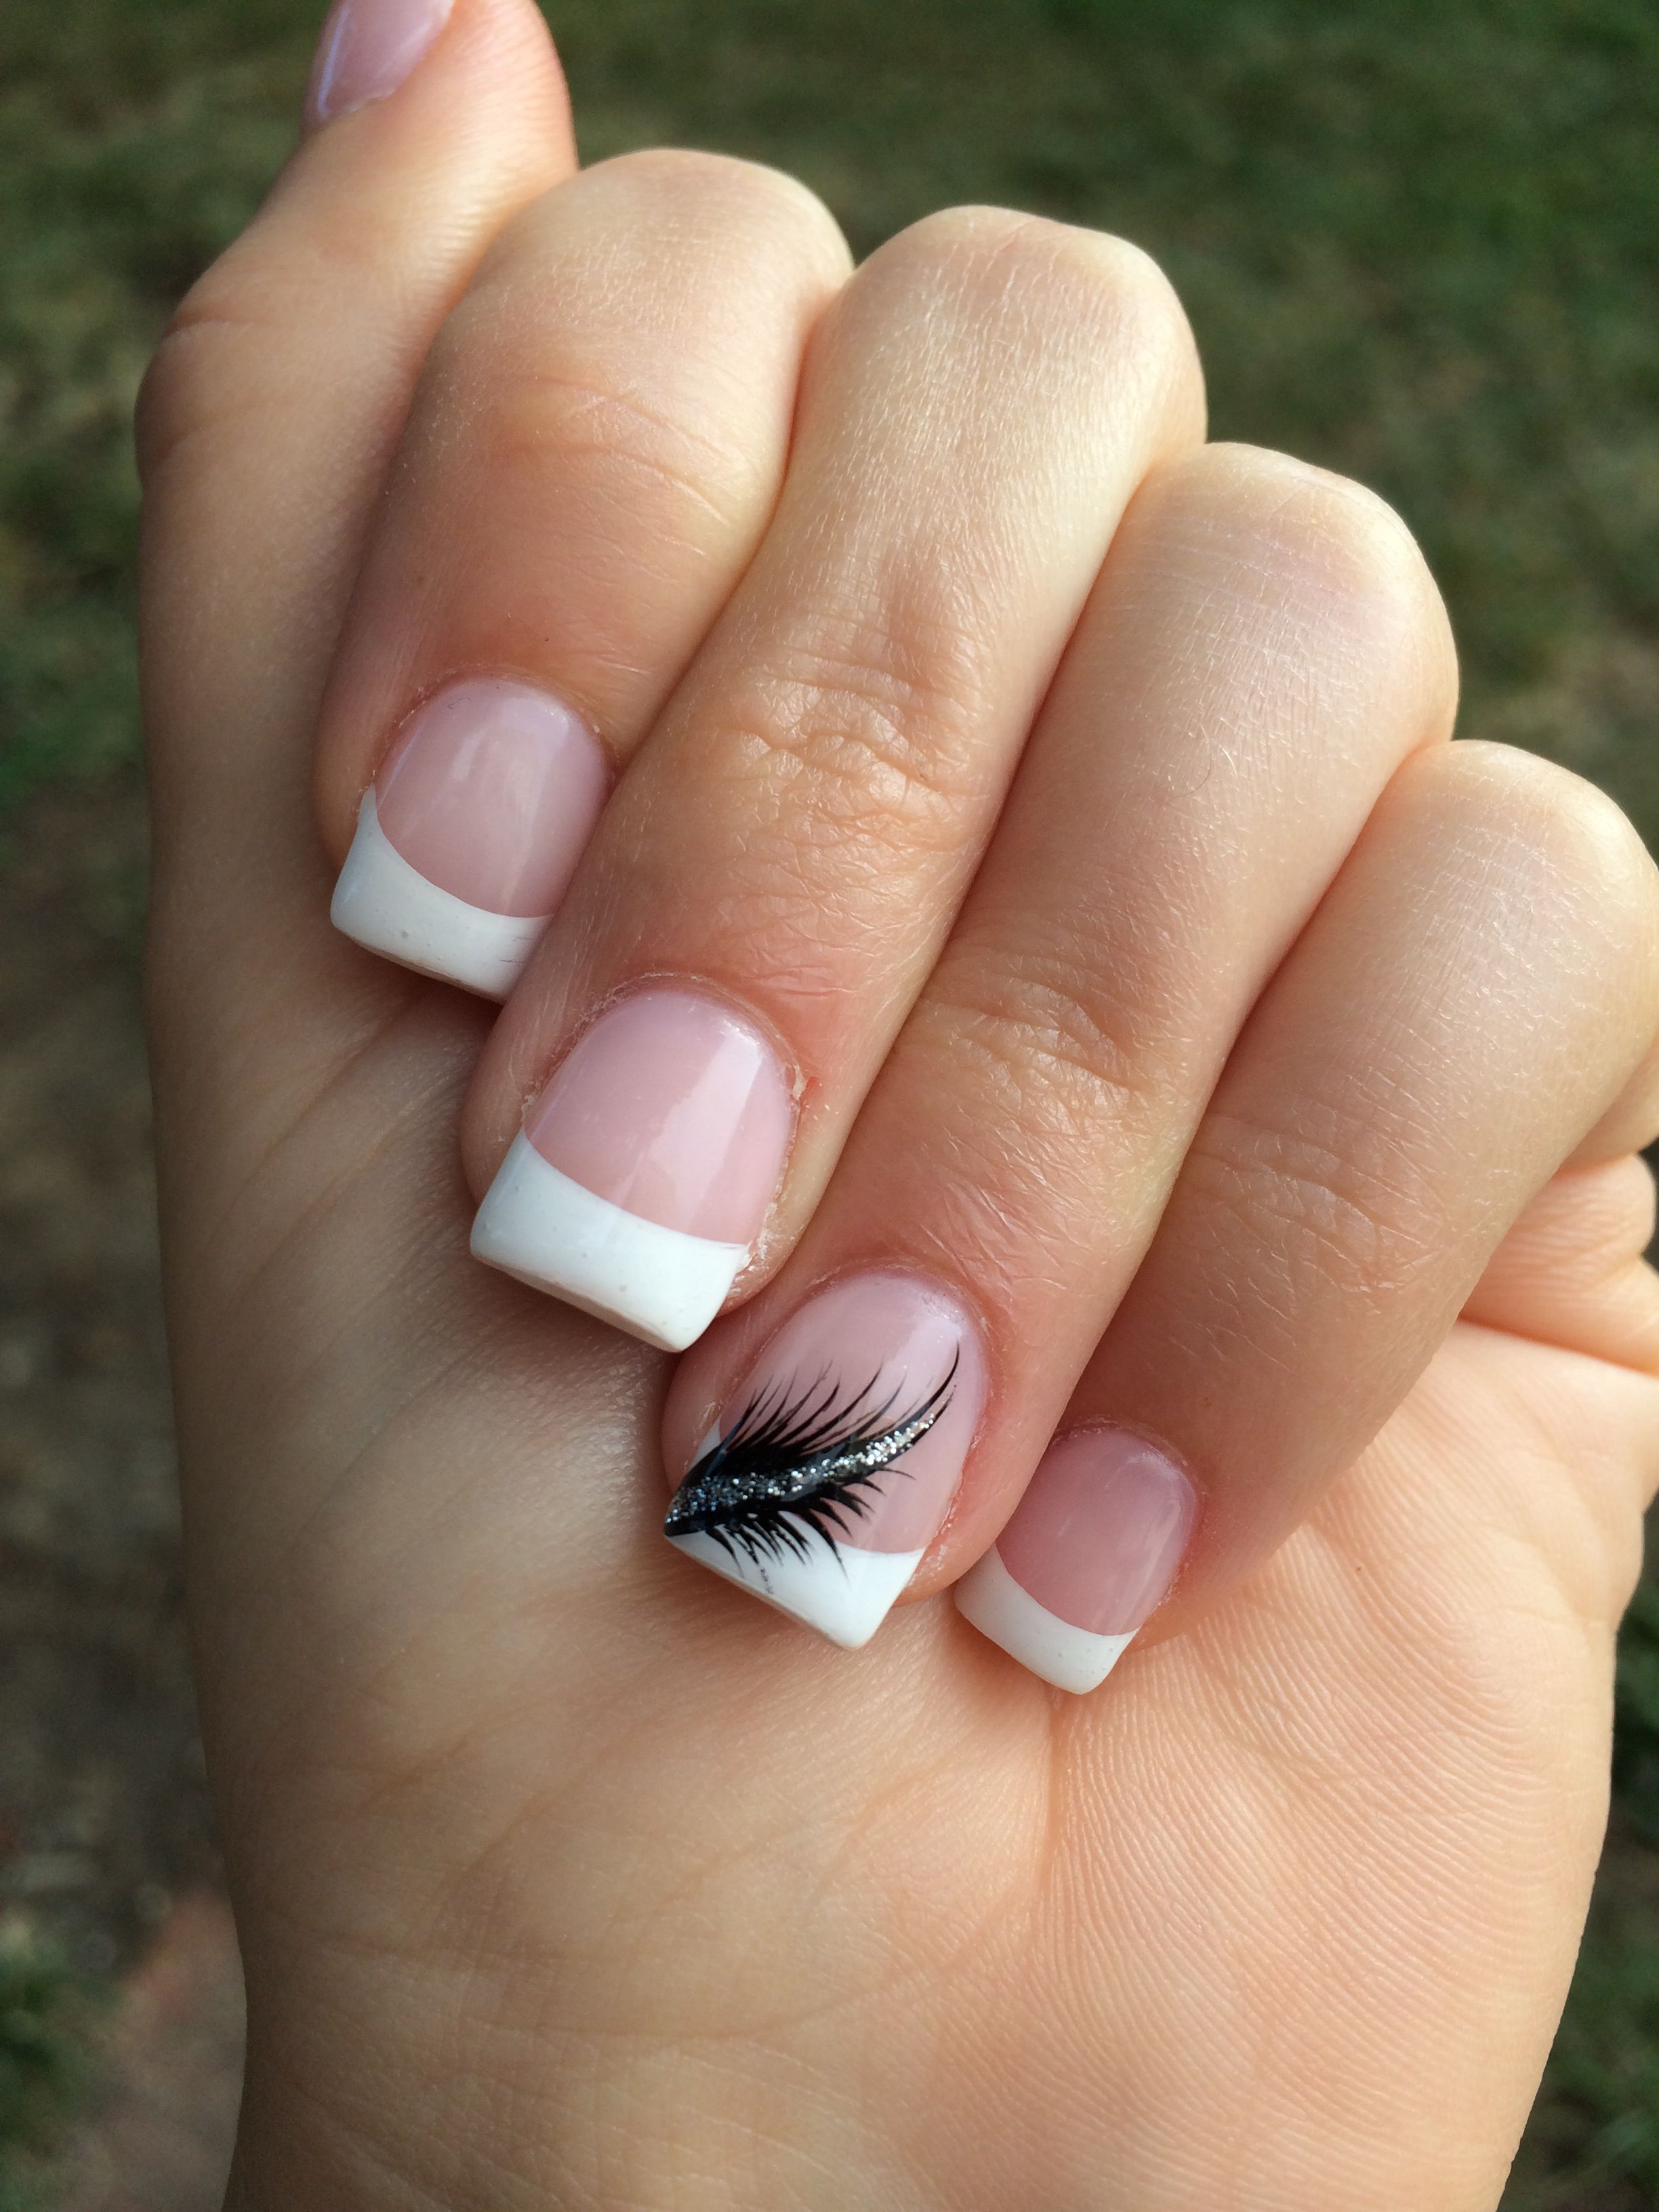 french tips with a feather d cos ongles pinterest ongles faux ongles et ongles vernis. Black Bedroom Furniture Sets. Home Design Ideas